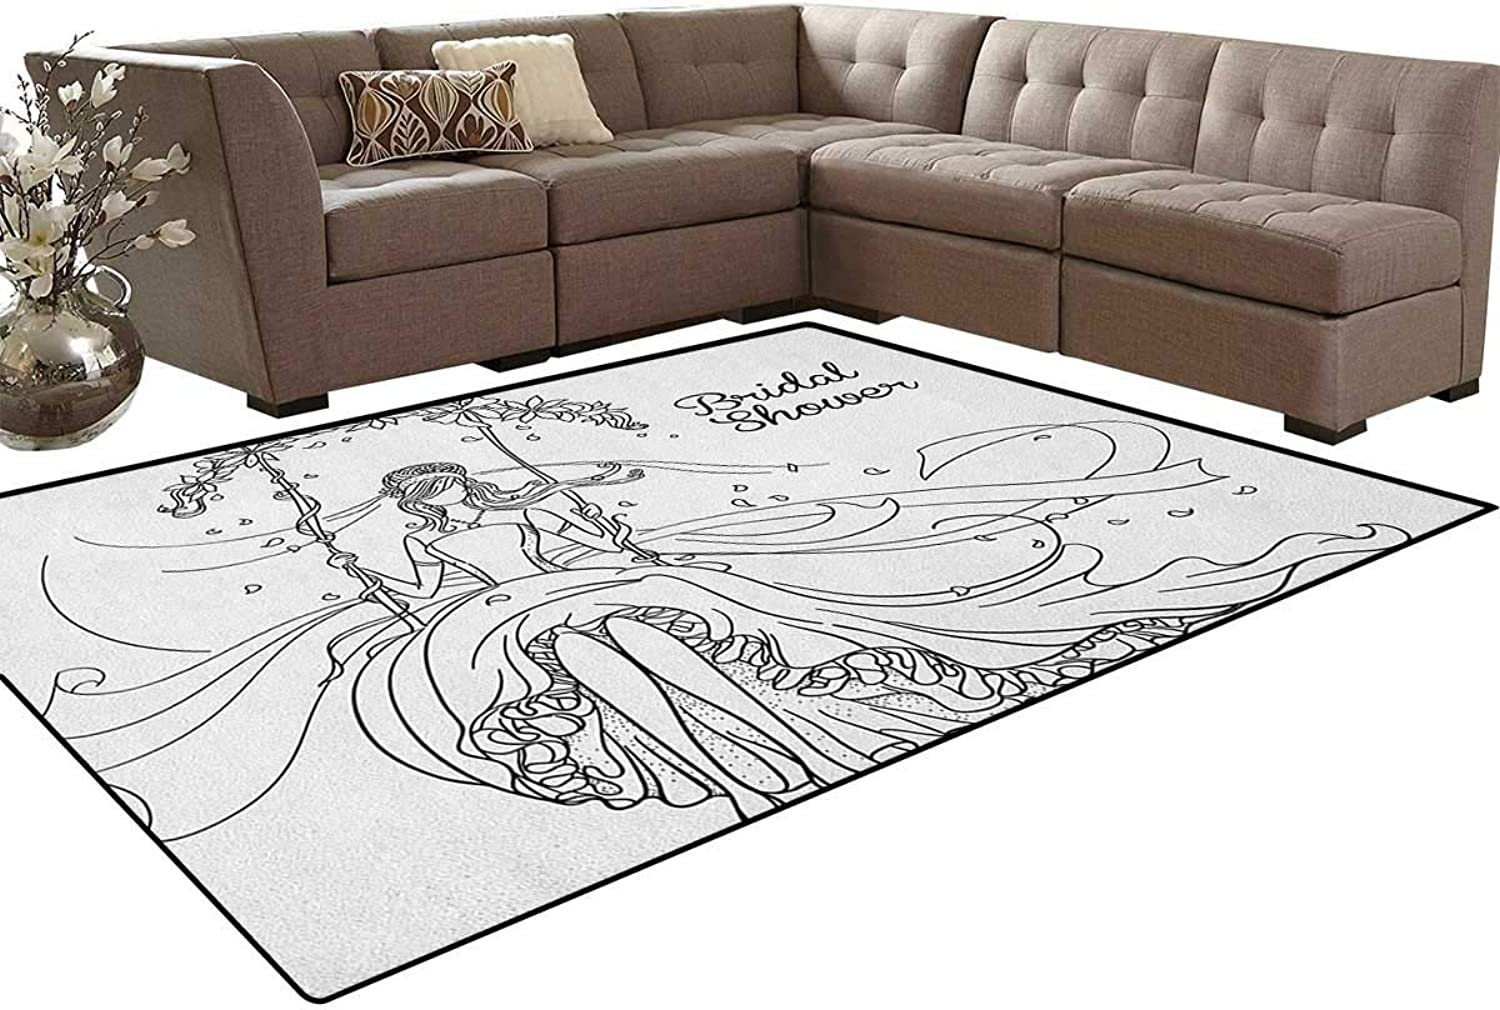 Sketchy Black and White Hand Drawn Bride with Floral Swirls Swing Image Floor Mat Rug Indoor Front Door Kitchen and Living Room Bedroom Mats Rubber Non Slip